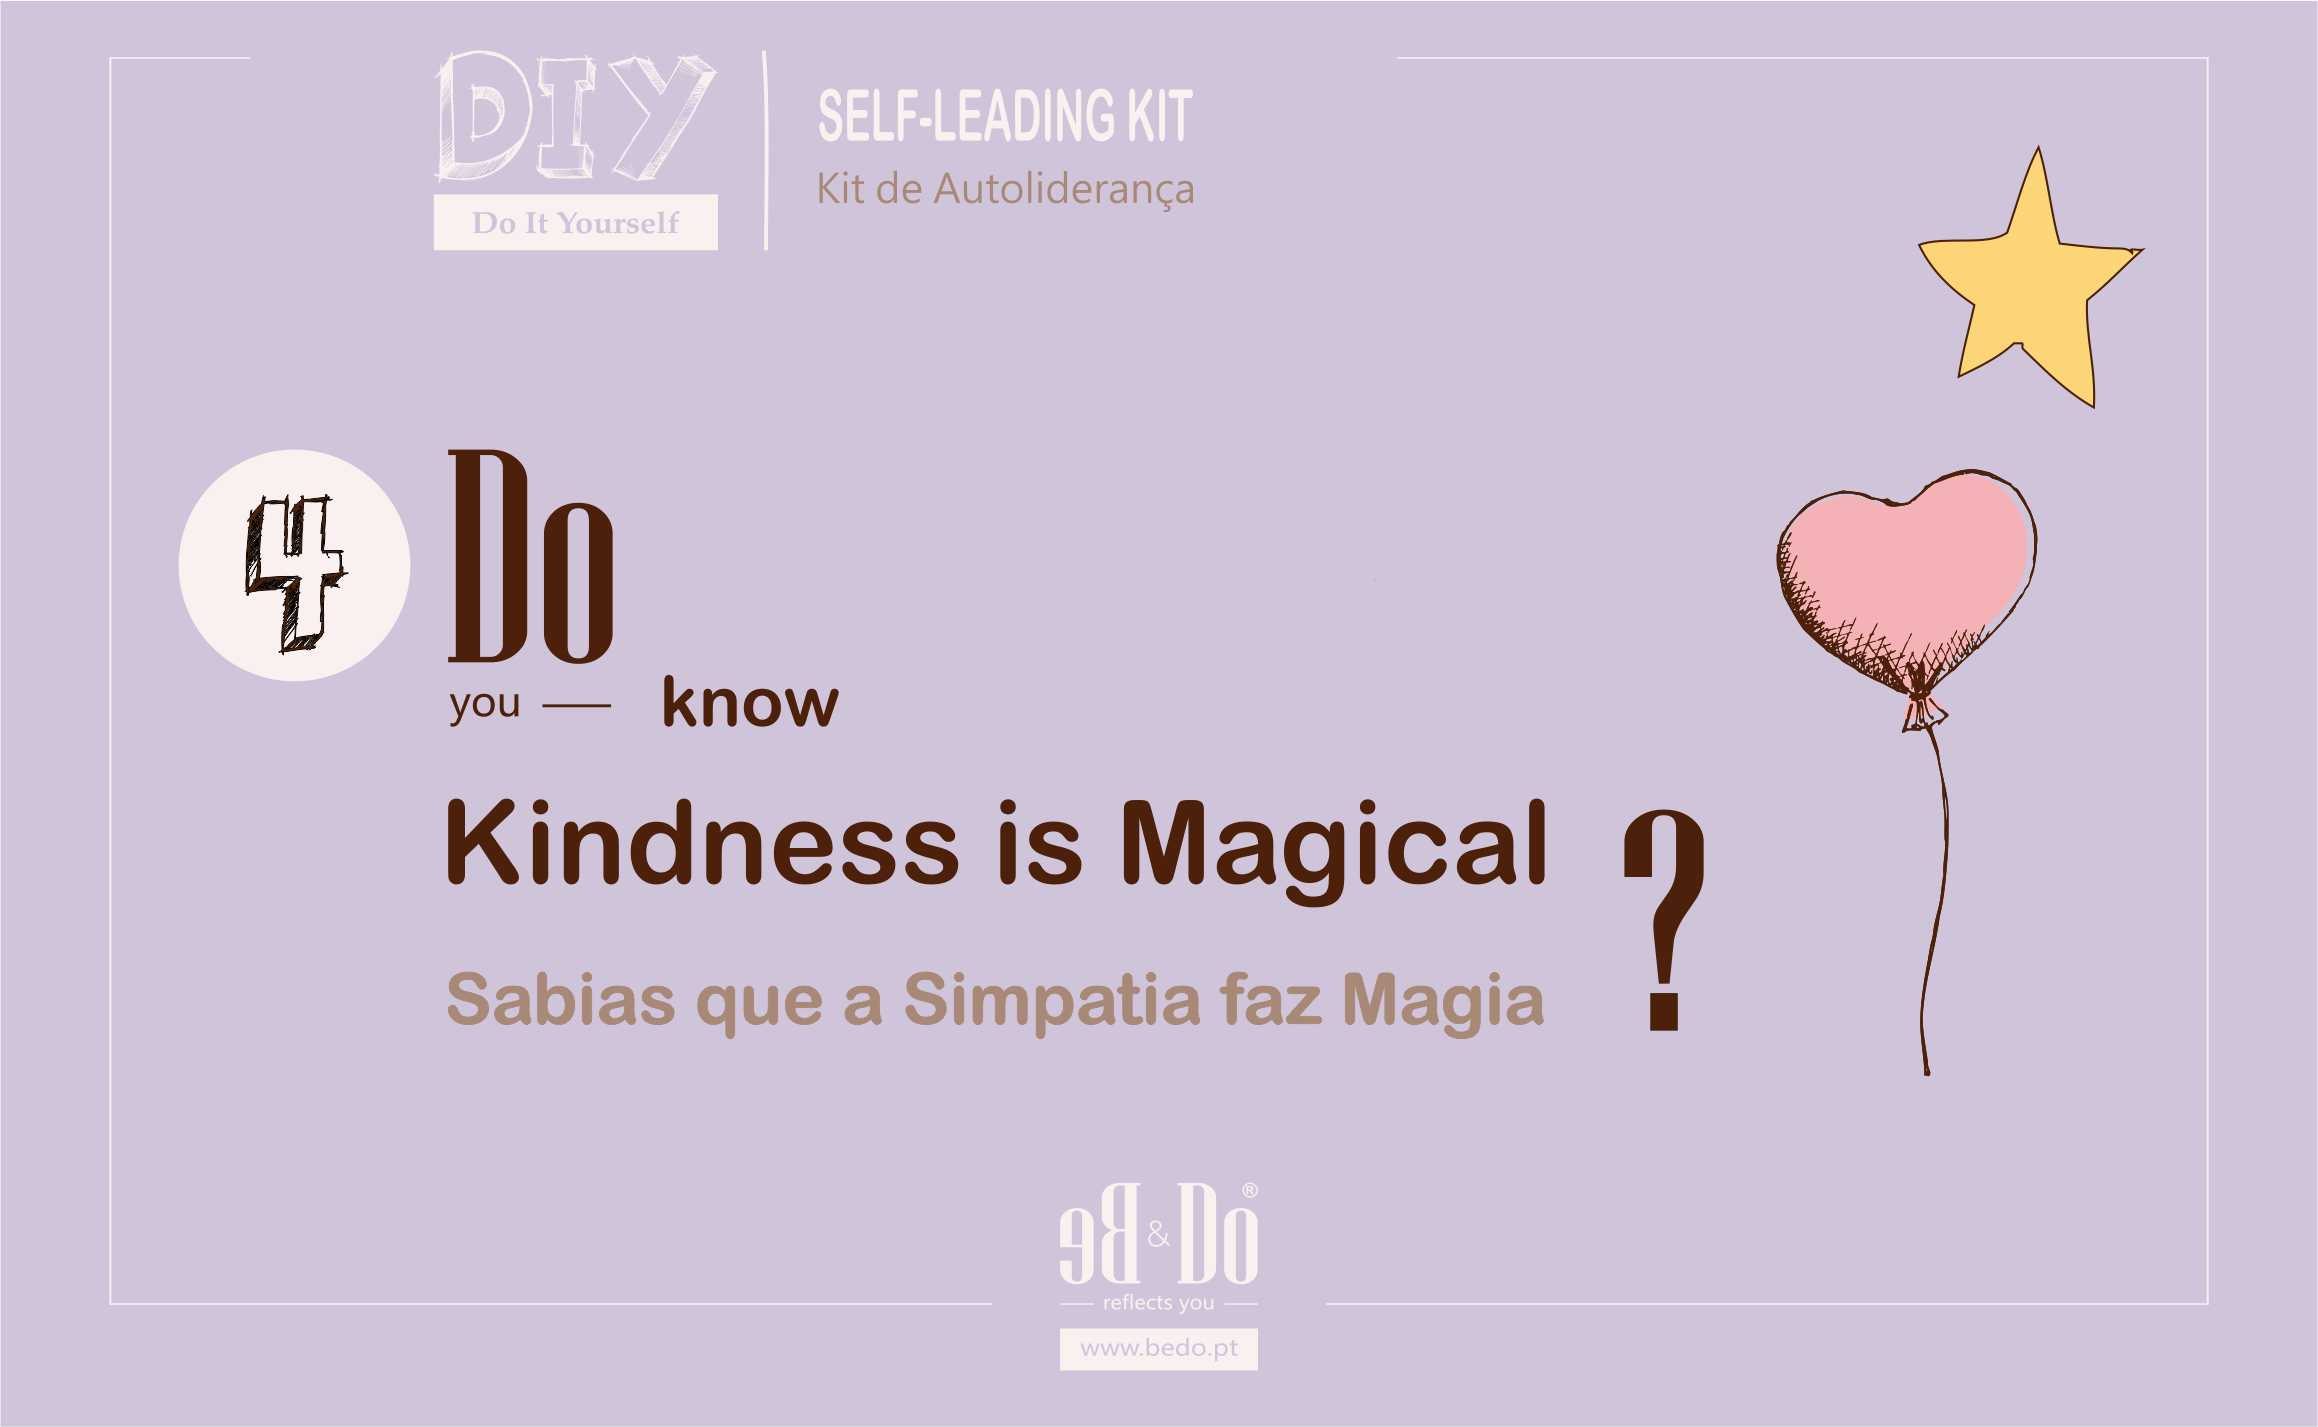 Kindness is Magical, do you know?